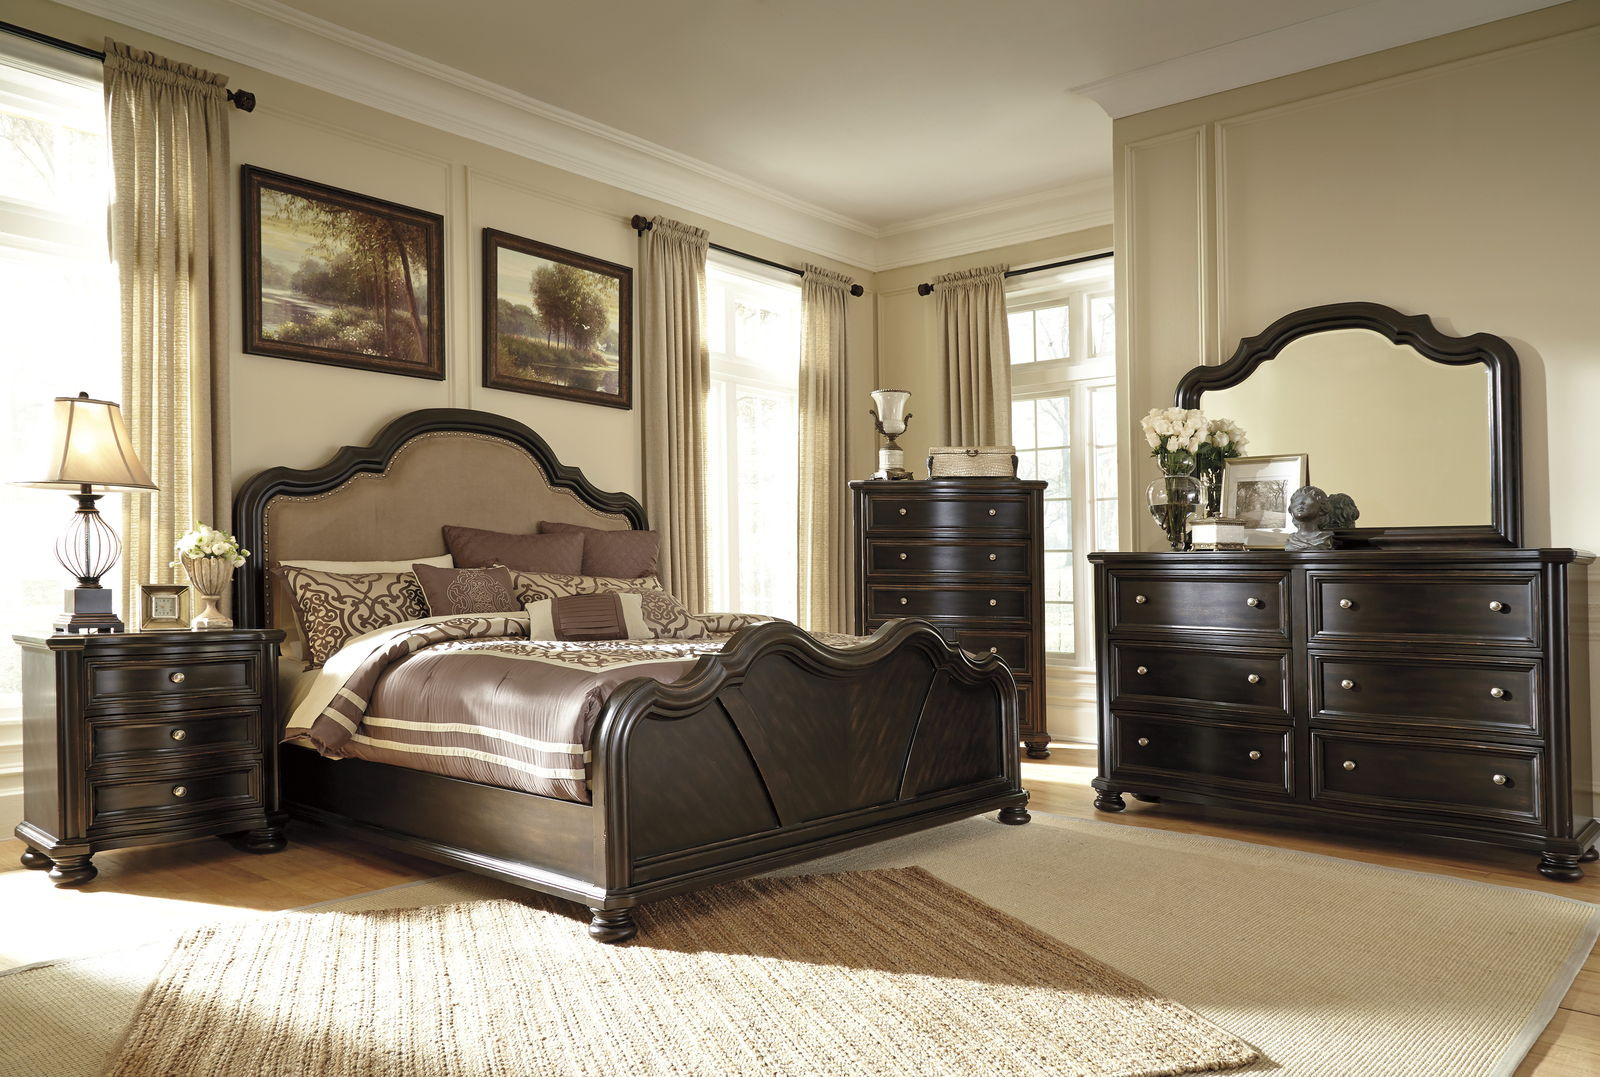 Best ideas about Ashley Bedroom Sets . Save or Pin Ashley Furniture Black Bedroom Set Now.